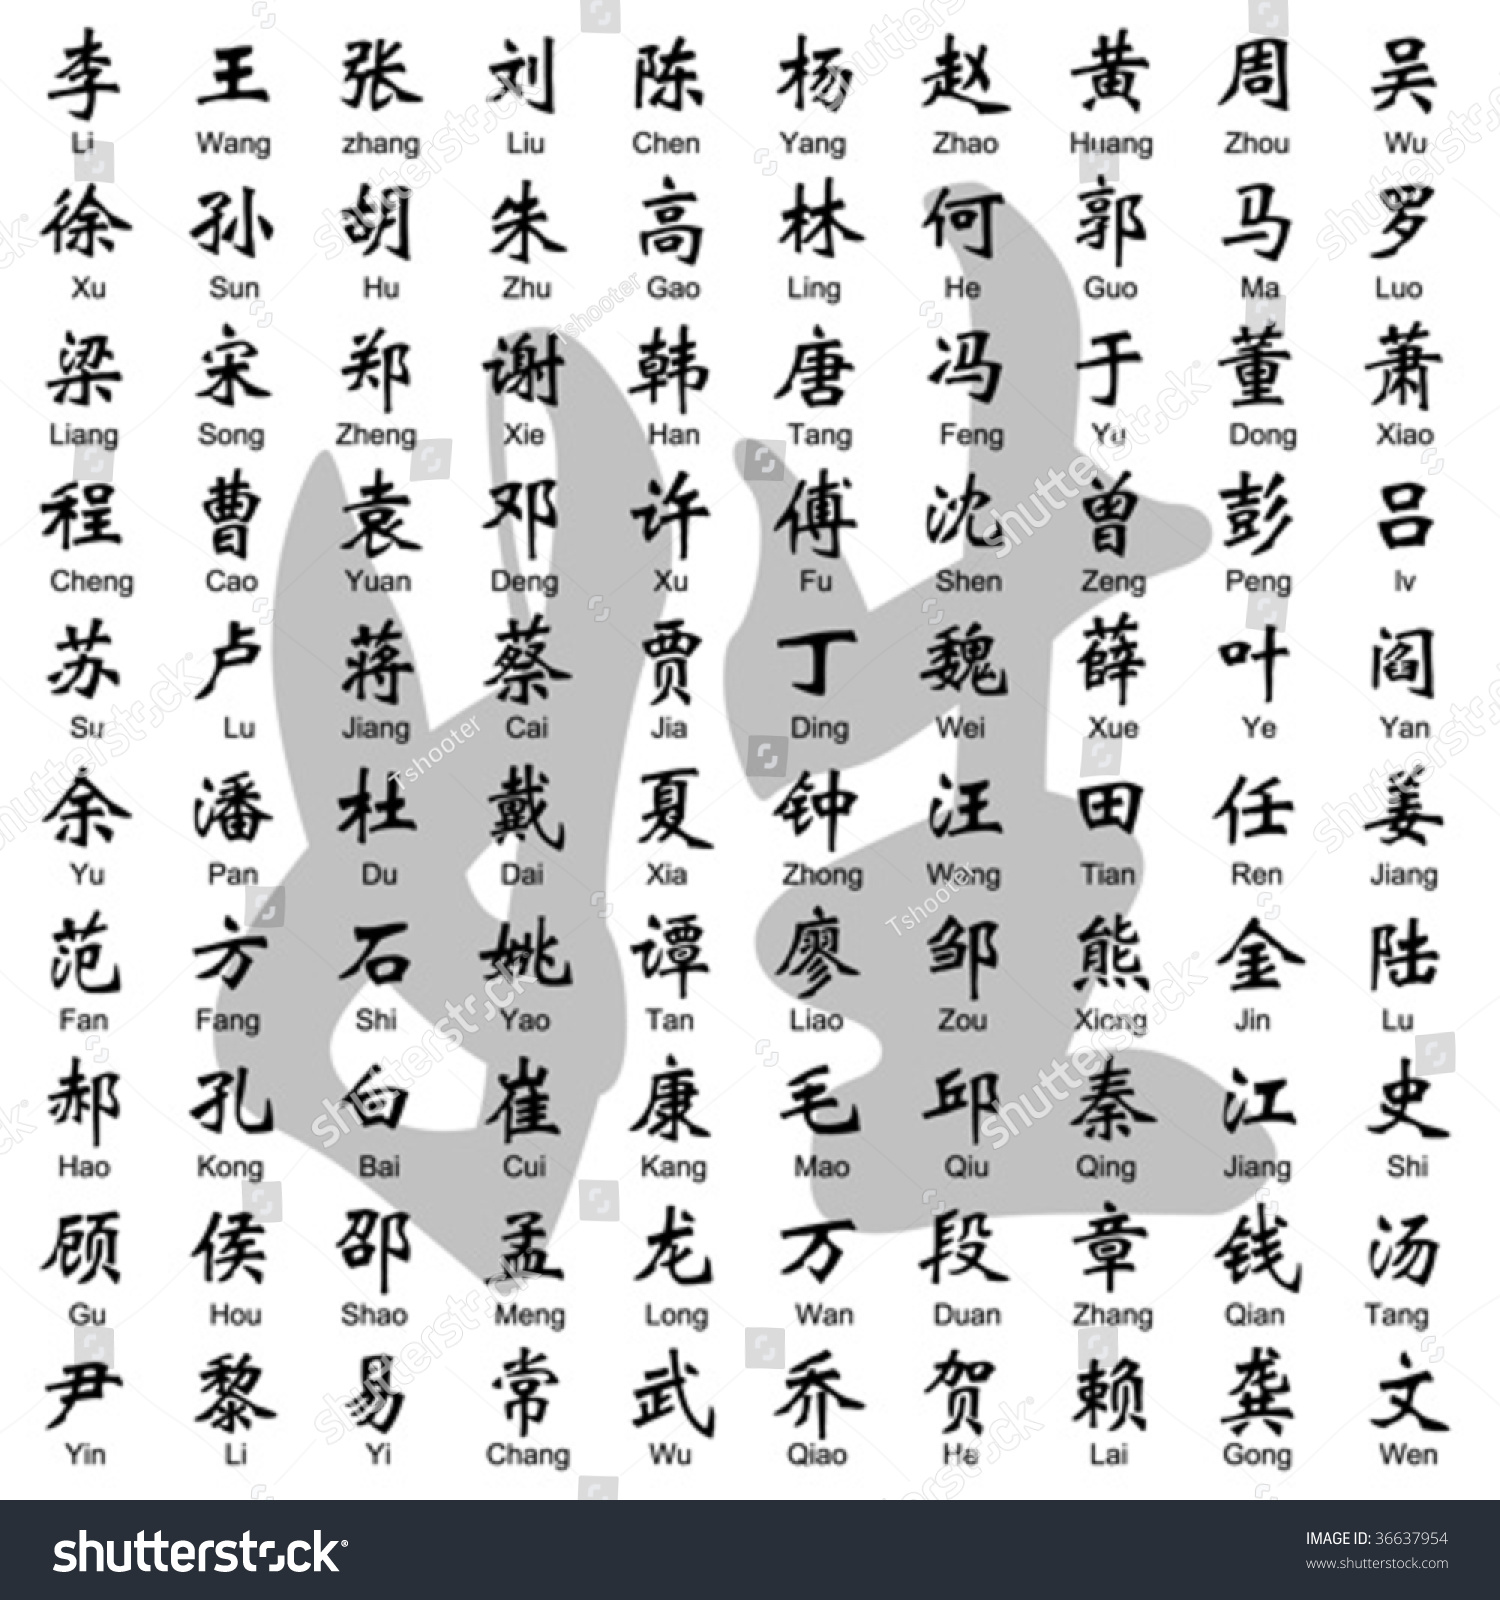 Ancient Chinese Surnames Related Keywords & Suggestions - Ancient